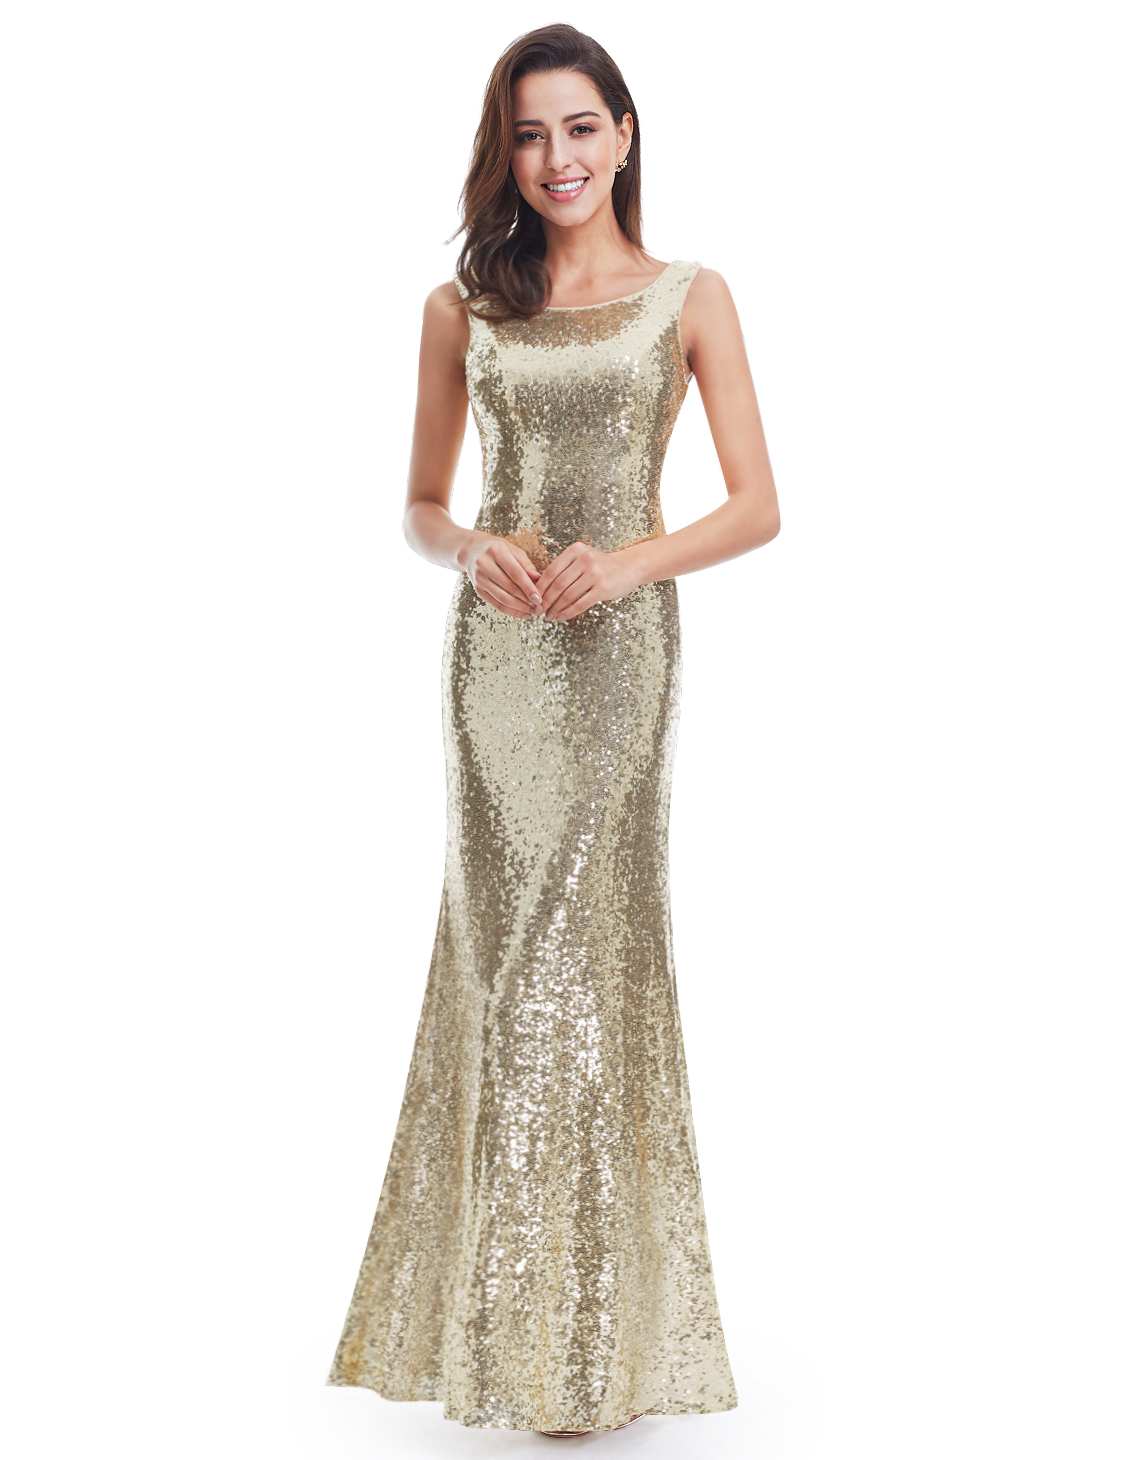 Gold sequin maxi pageant bridesmaid dresses formal homecoming gold sequin maxi pageant bridesmaid dresses formal homecoming ombrellifo Images